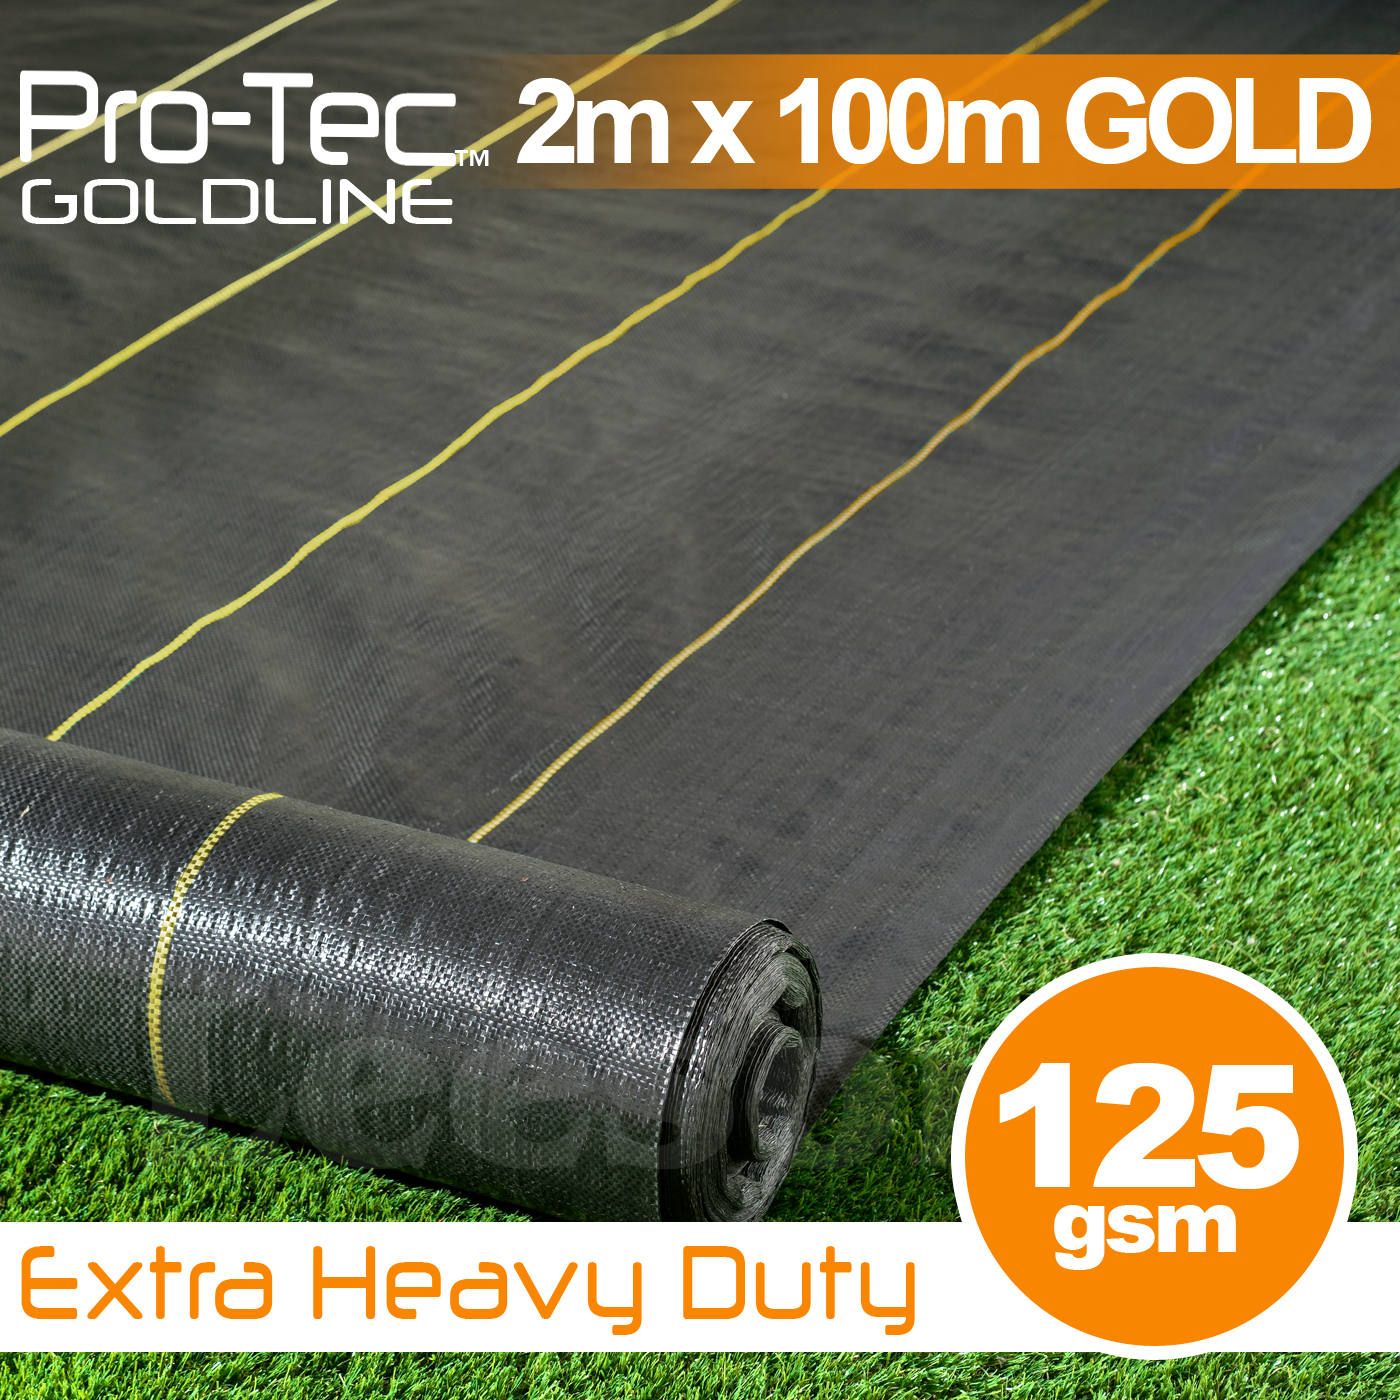 2m x 100m Extra Heavy Duty Weed Control Gold